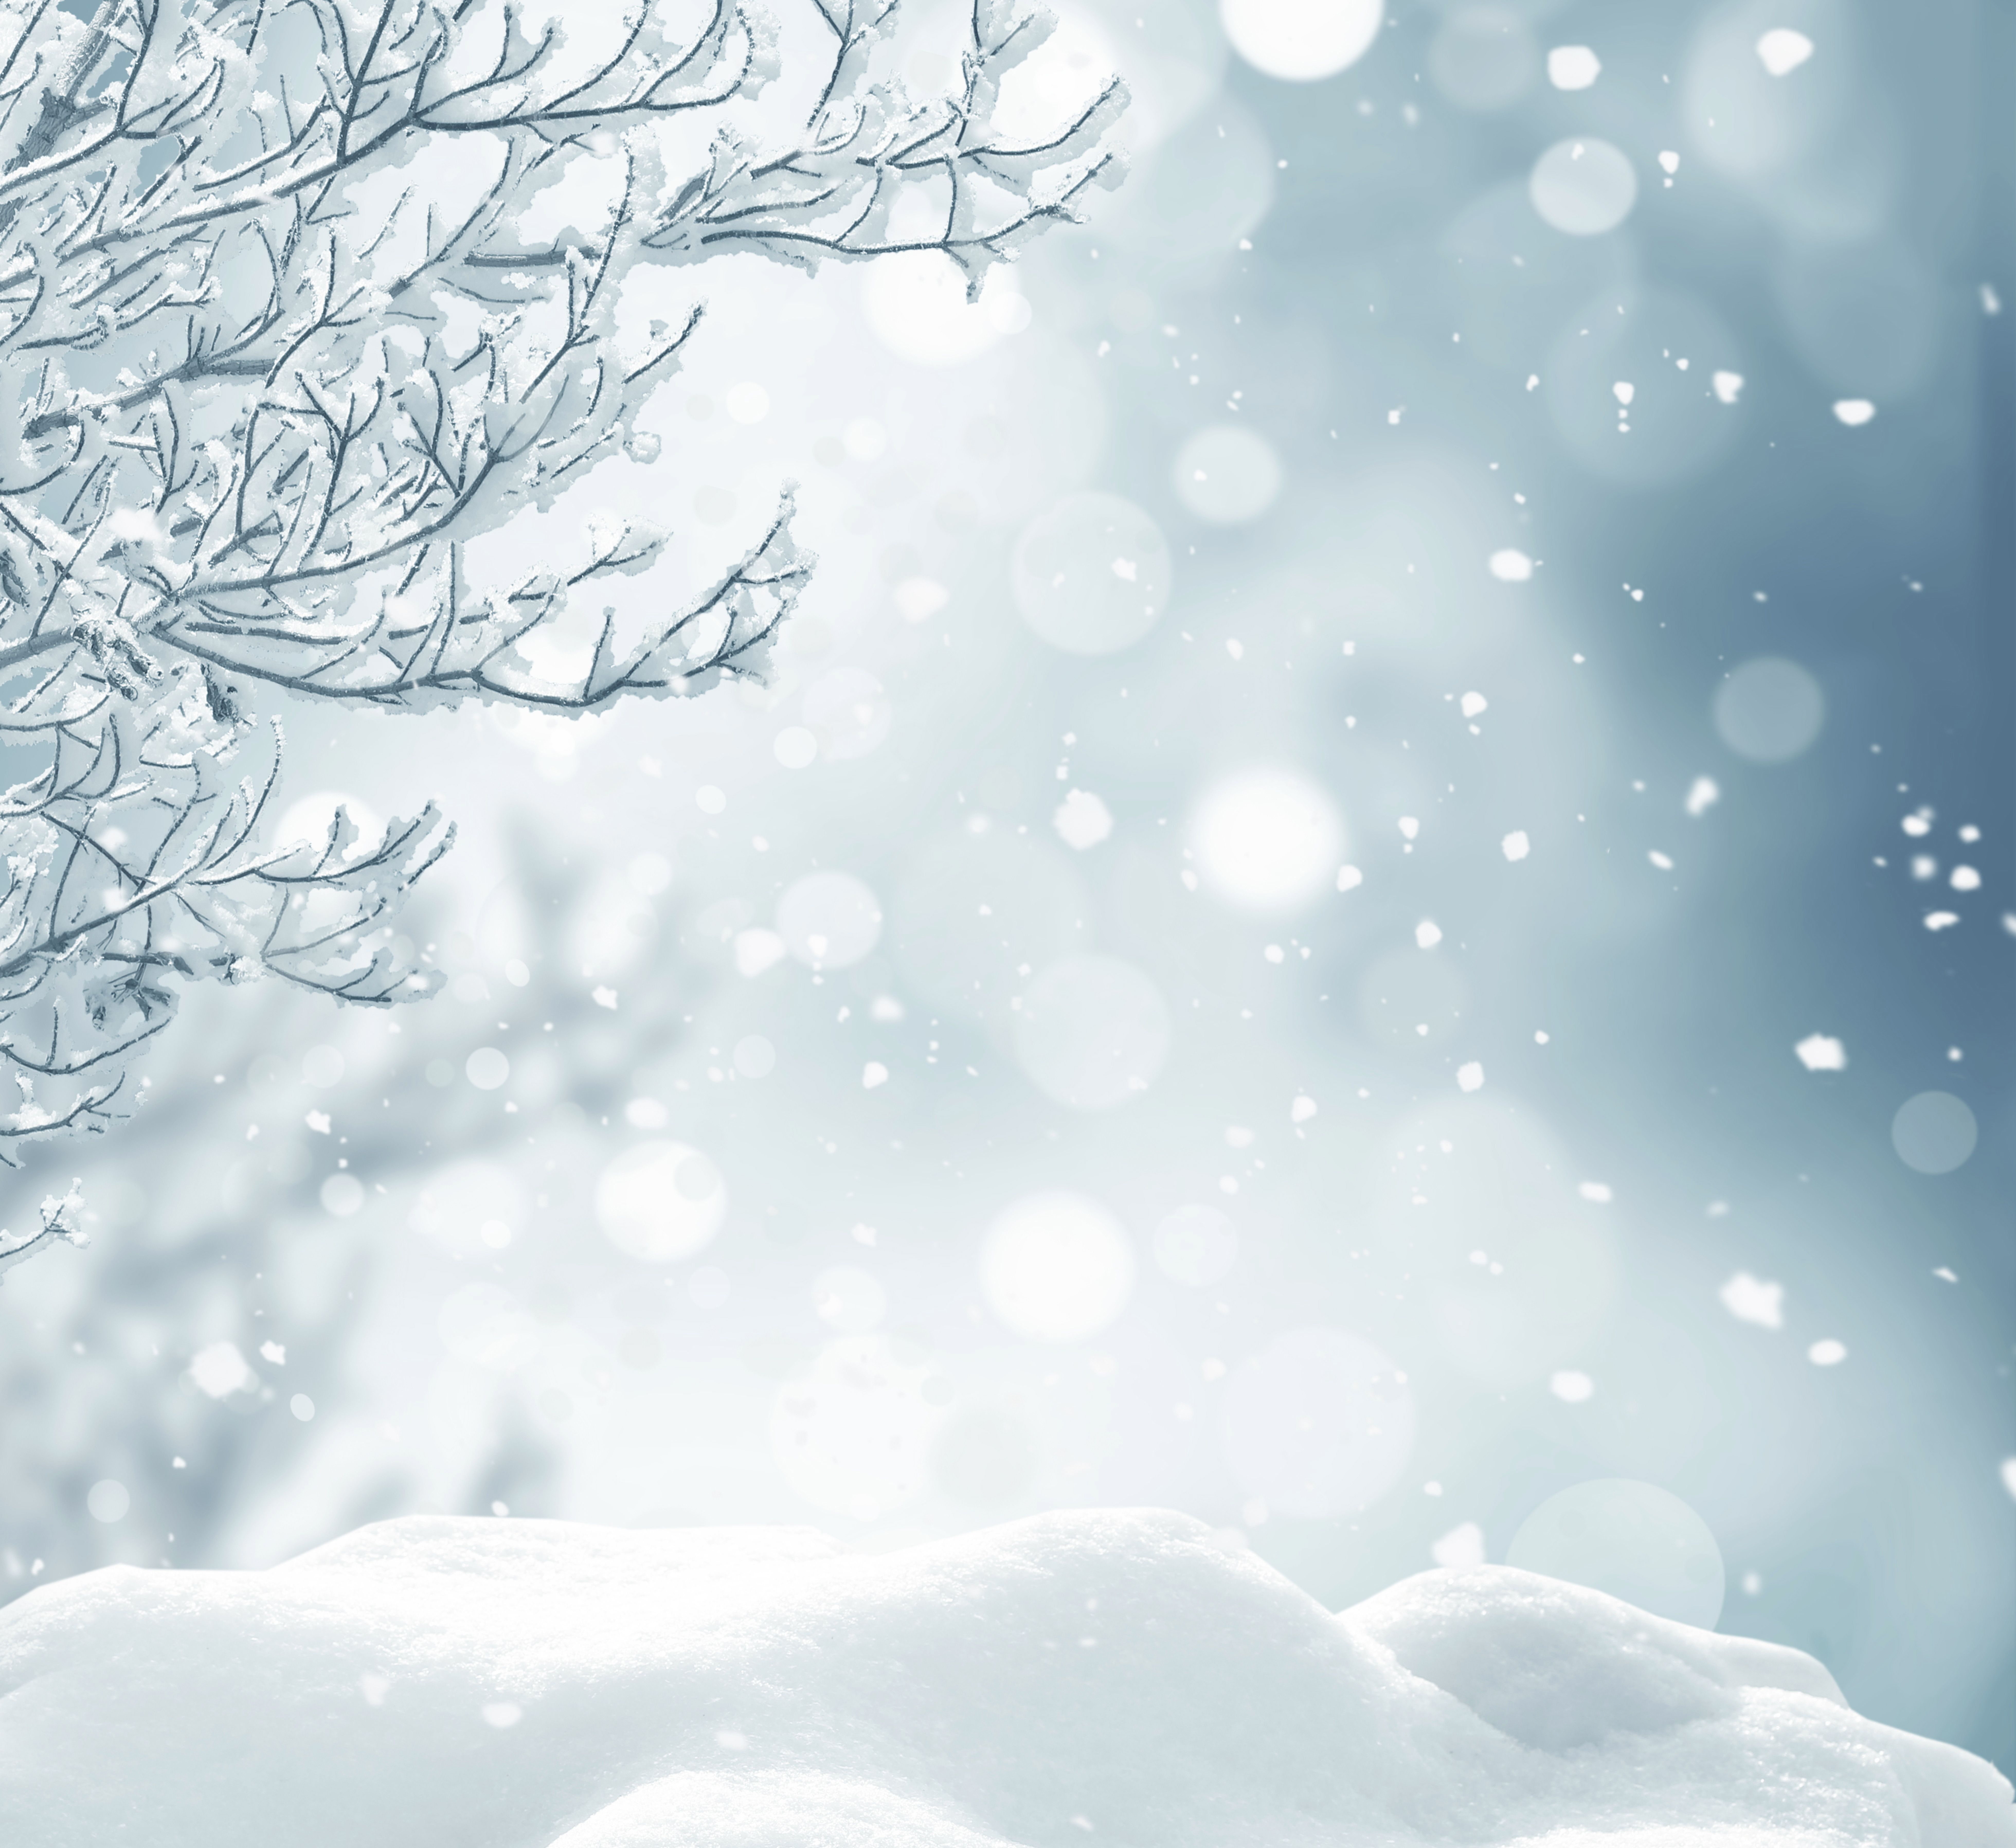 Snowy Background With Branches Winter Background Night Sky Photography Background